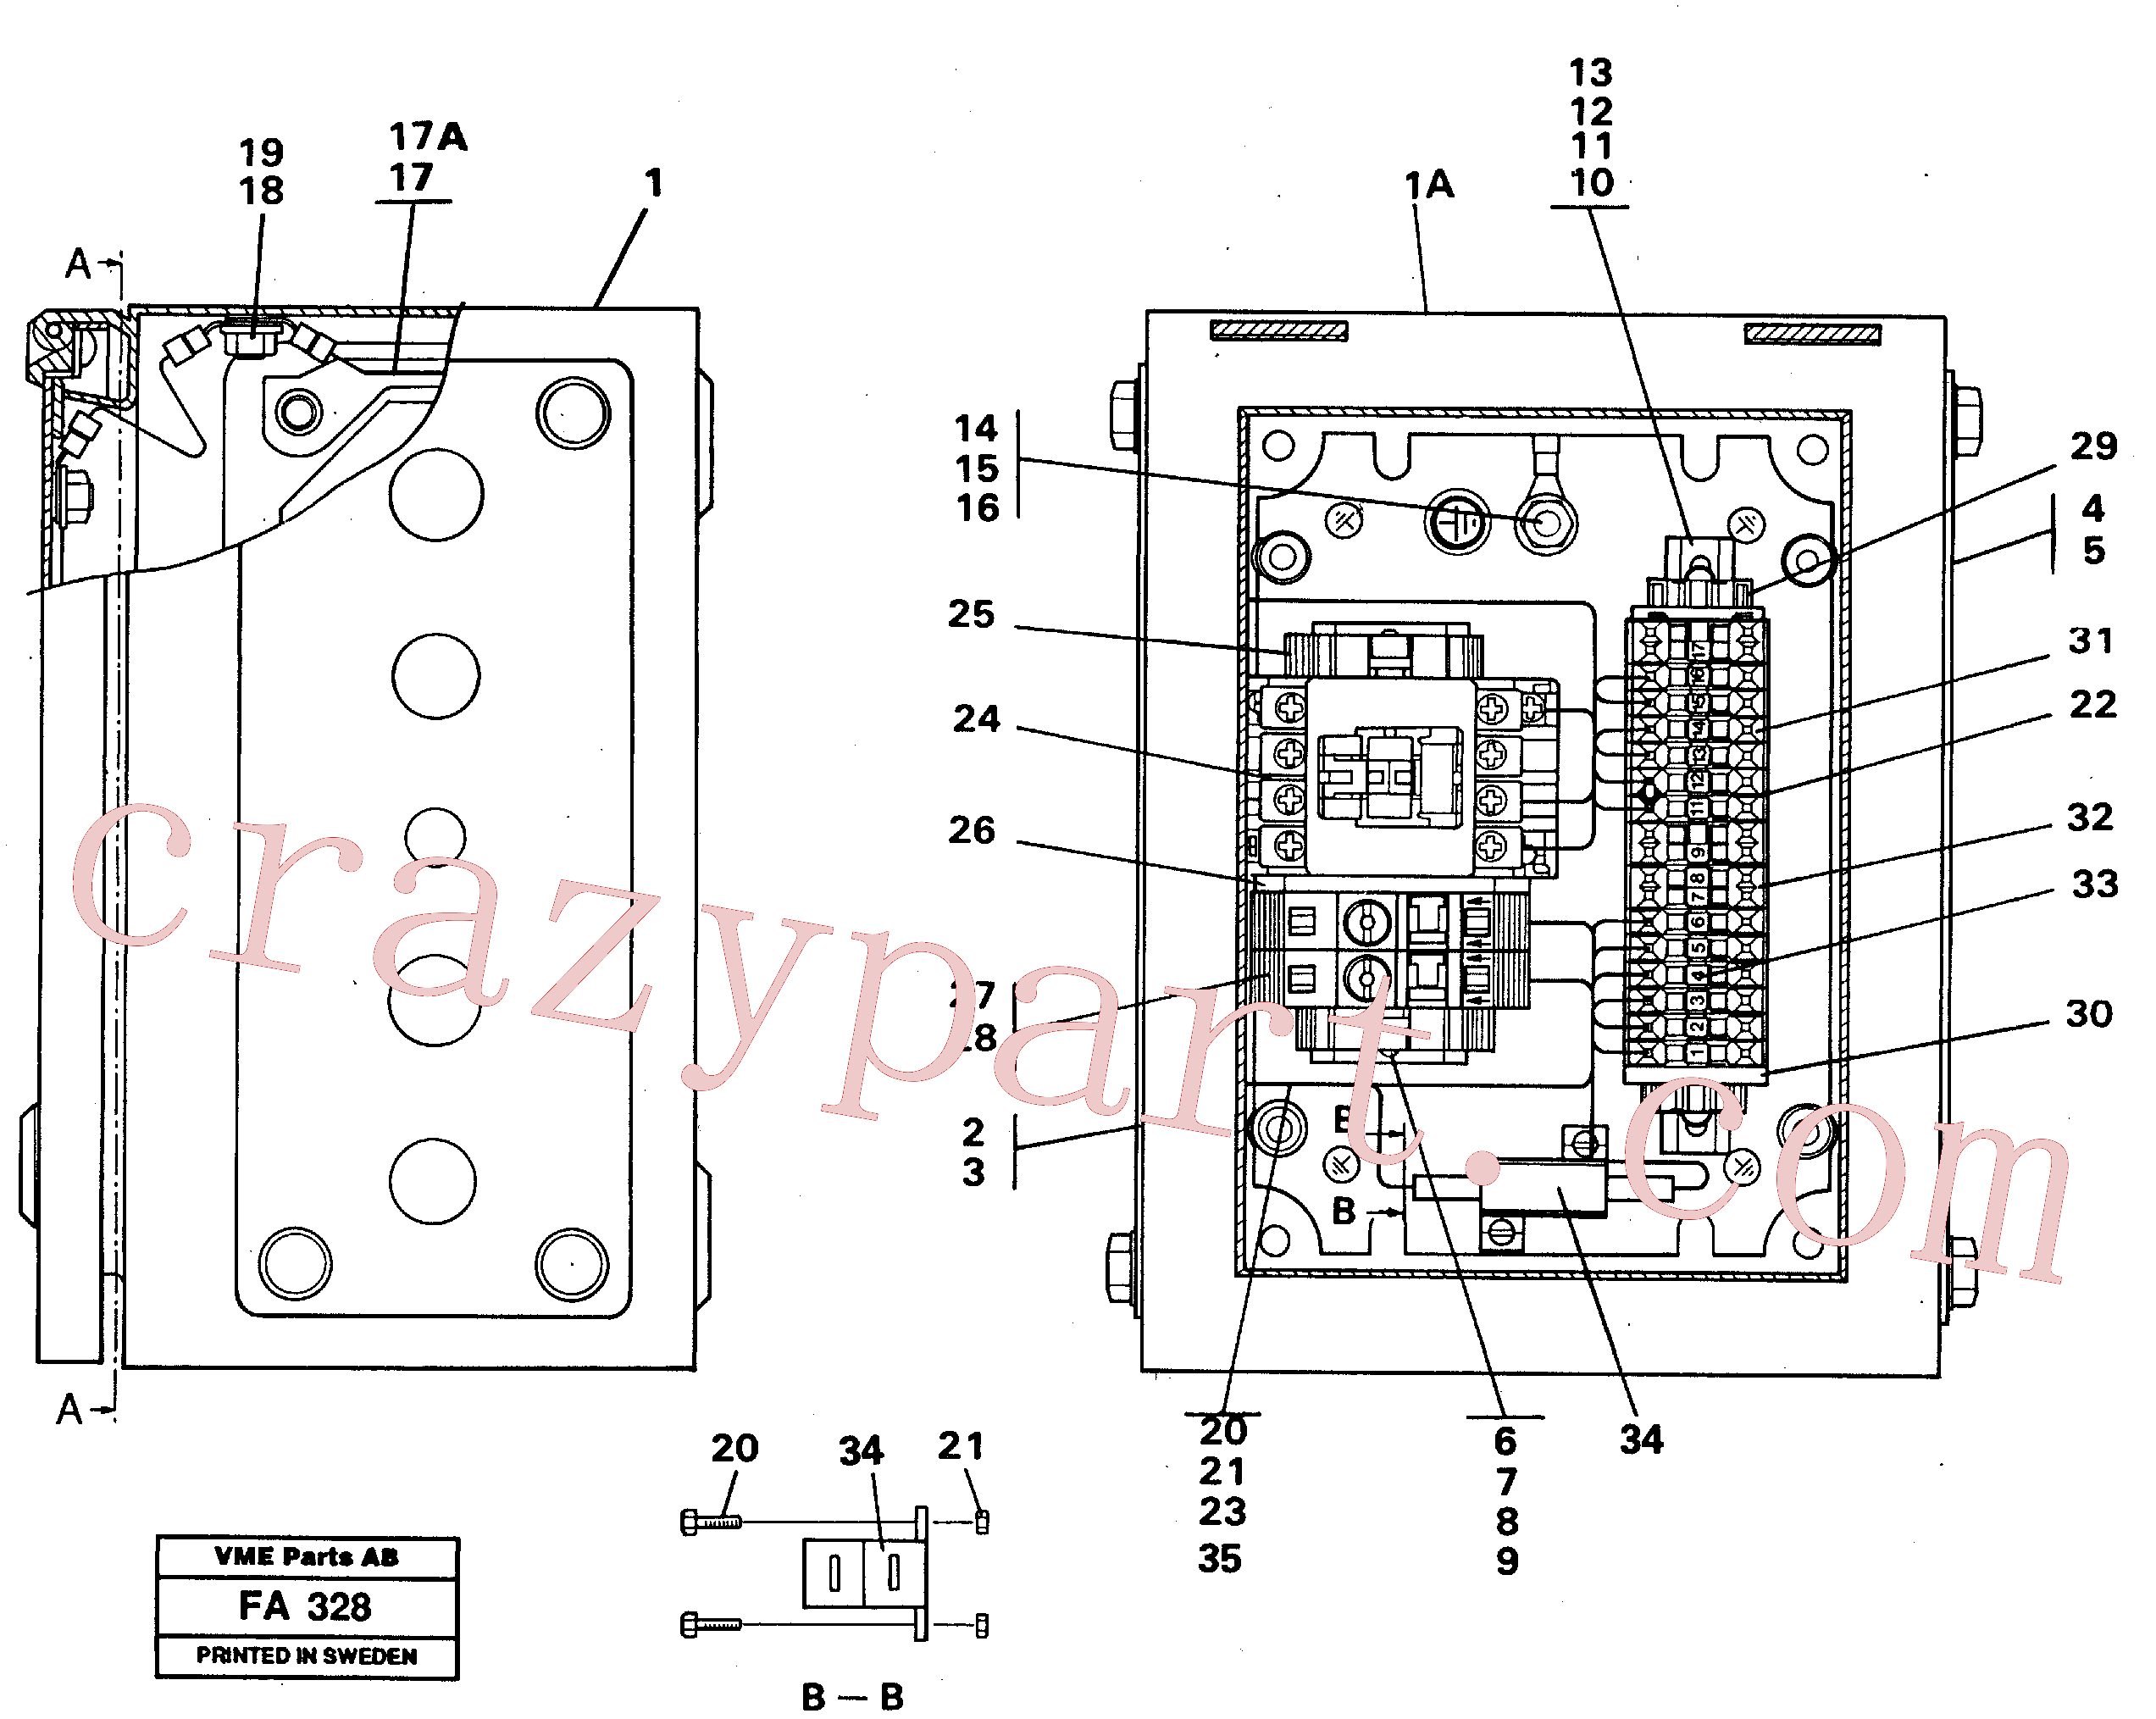 VOE14261691 for Volvo Magnet equipment Ohio, Electrical distribution unit(FA328 assembly)